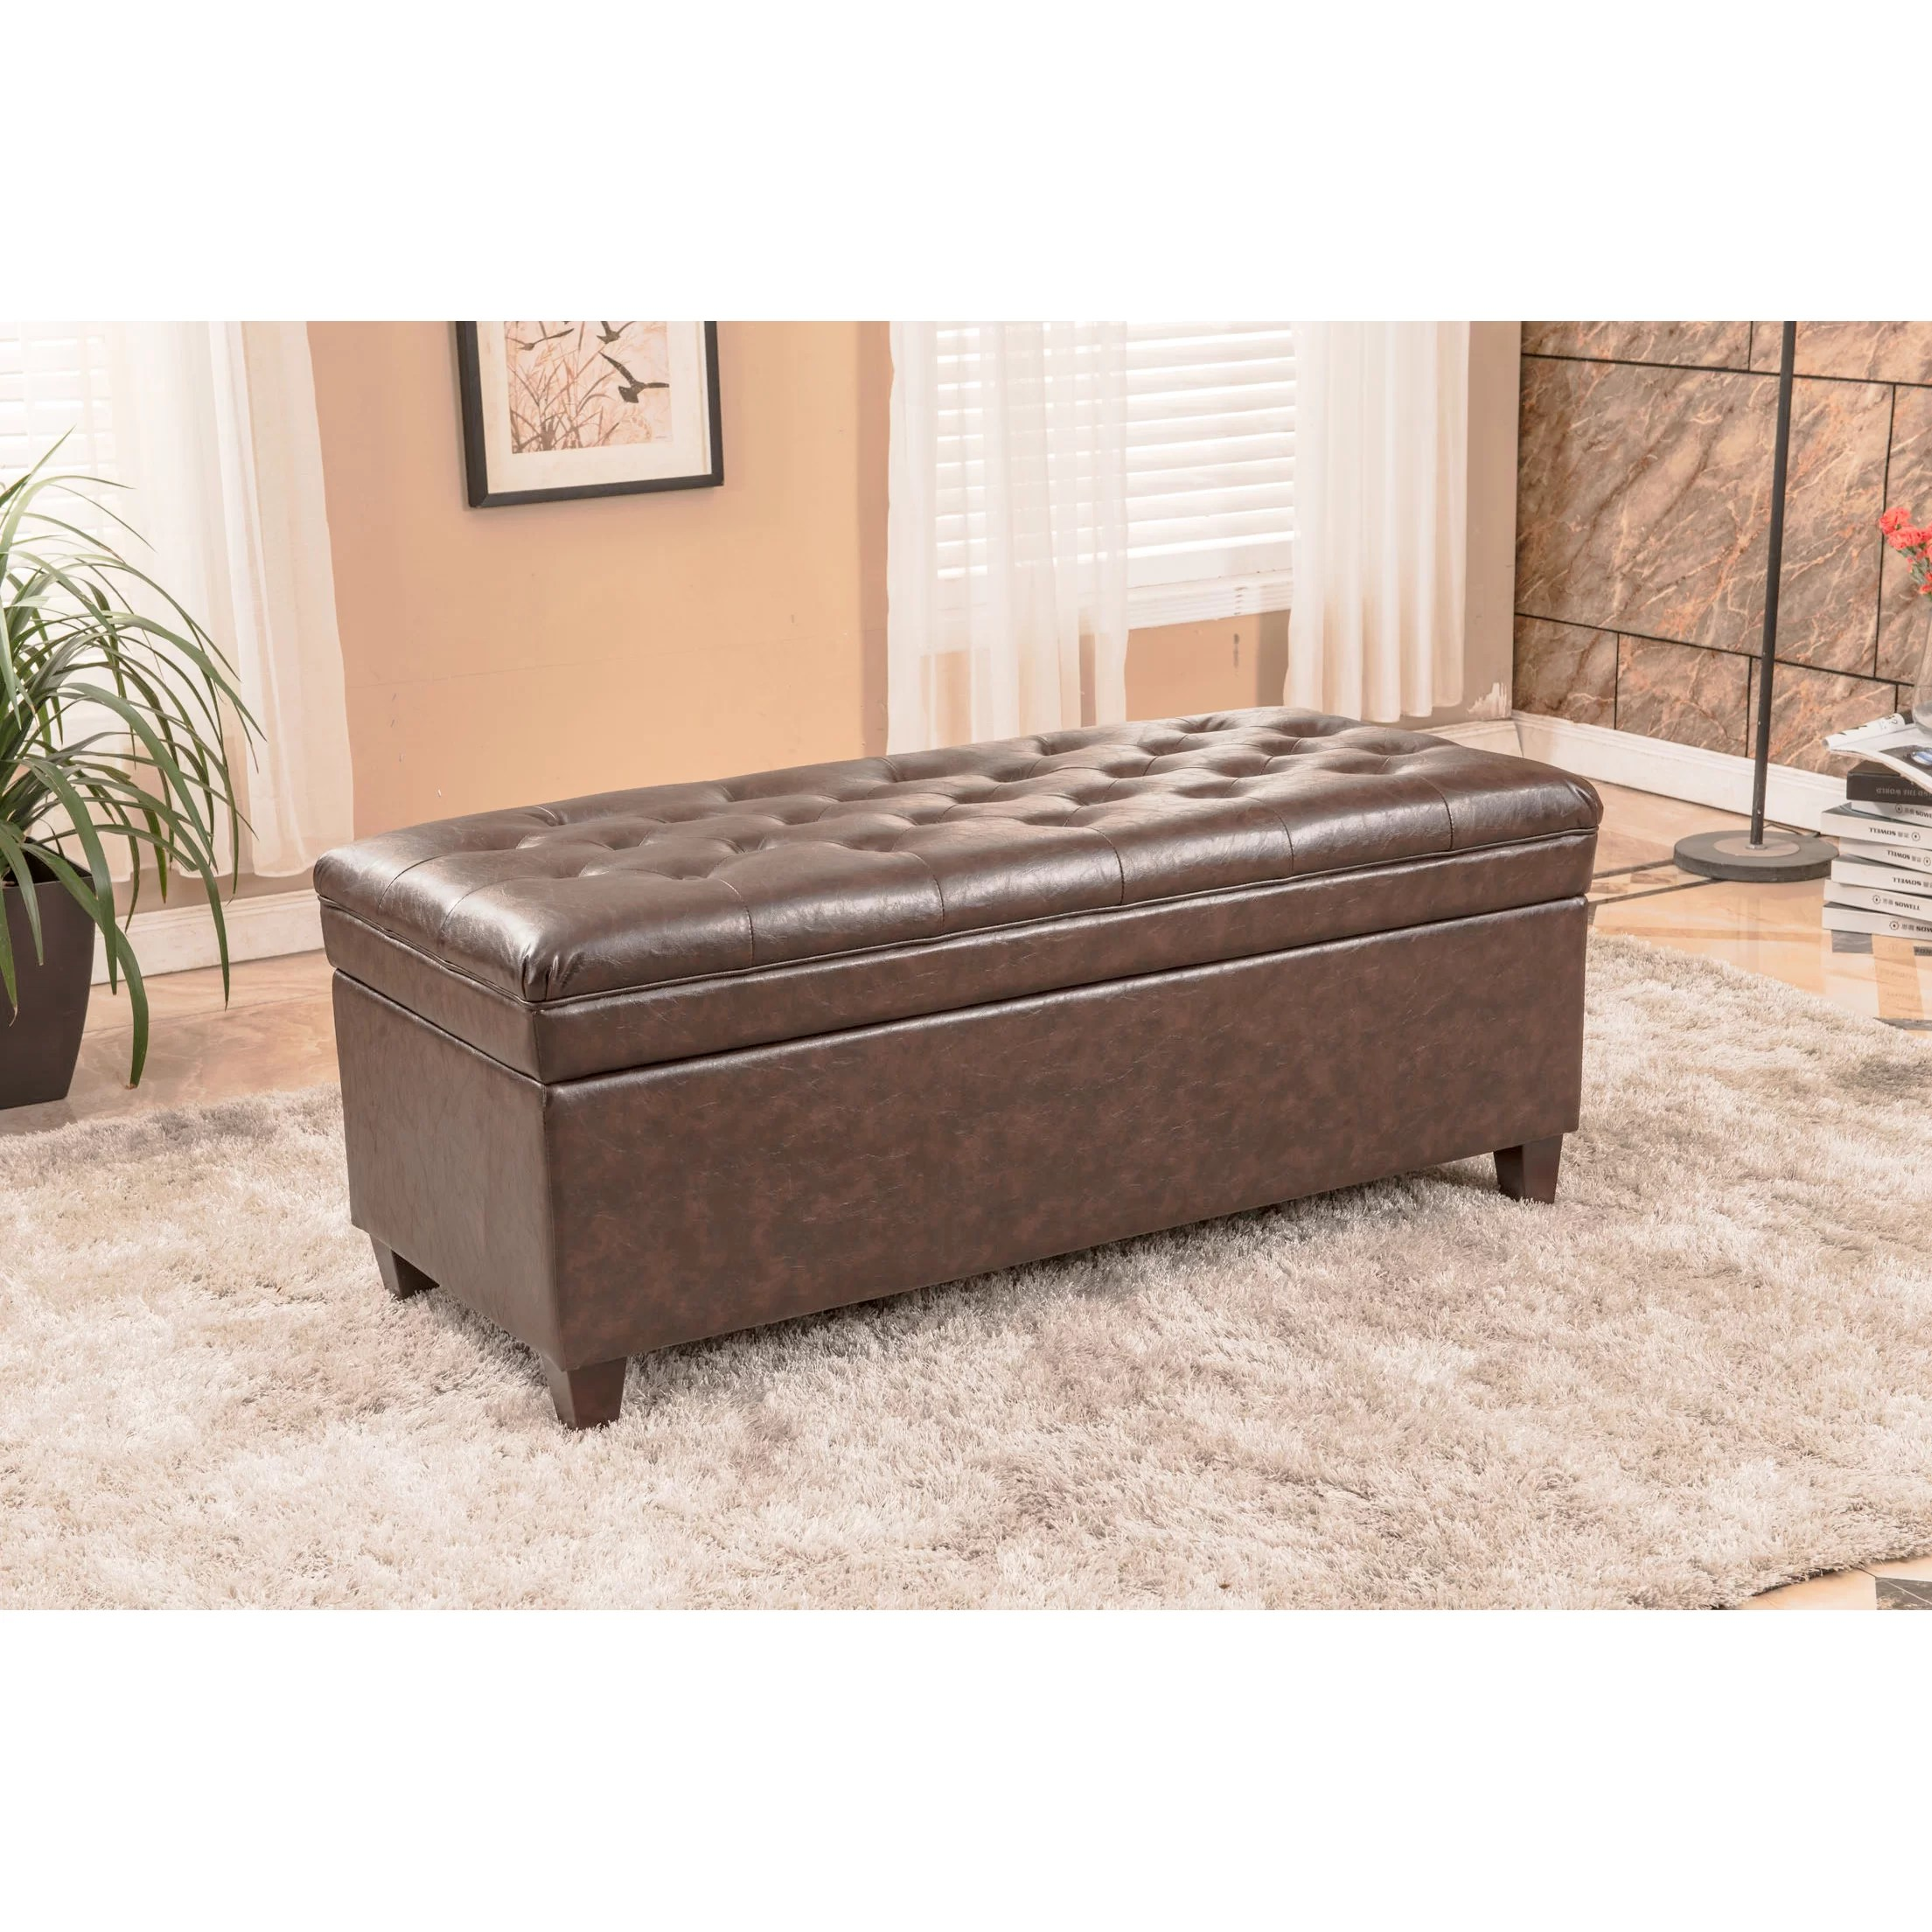 Bedroom Bench Pictures Bellasario Collection Upholstered Storage Bedroom Bench